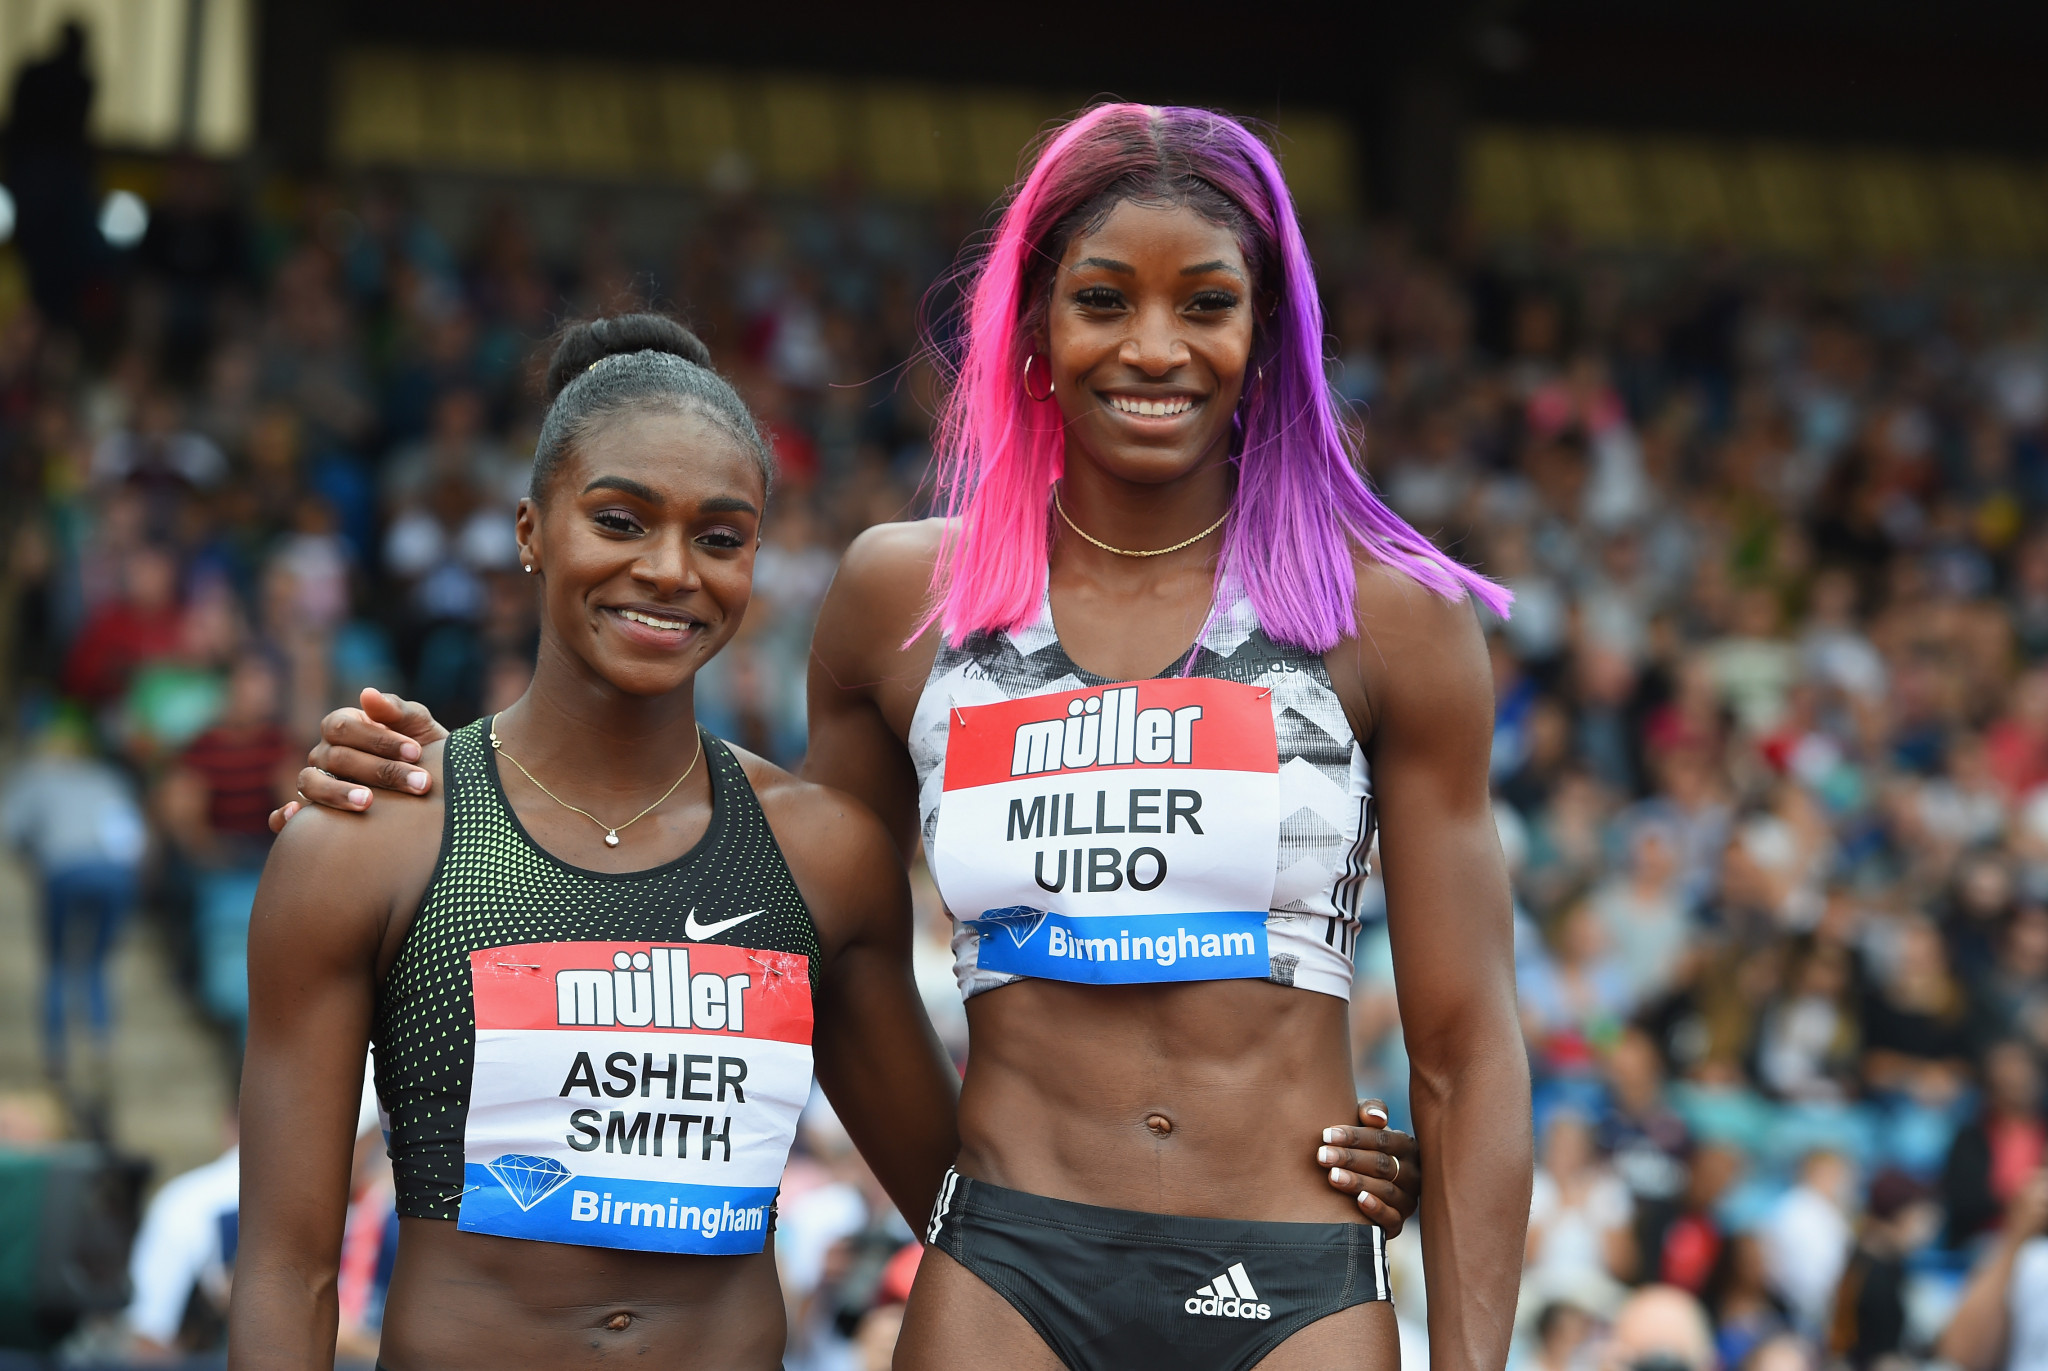 Dina Asher-Smith, left, was beaten in the 200m by Shaunae Miller-Uibo in the Birmingham IAAF Diamond League meeting  ©Getty Images